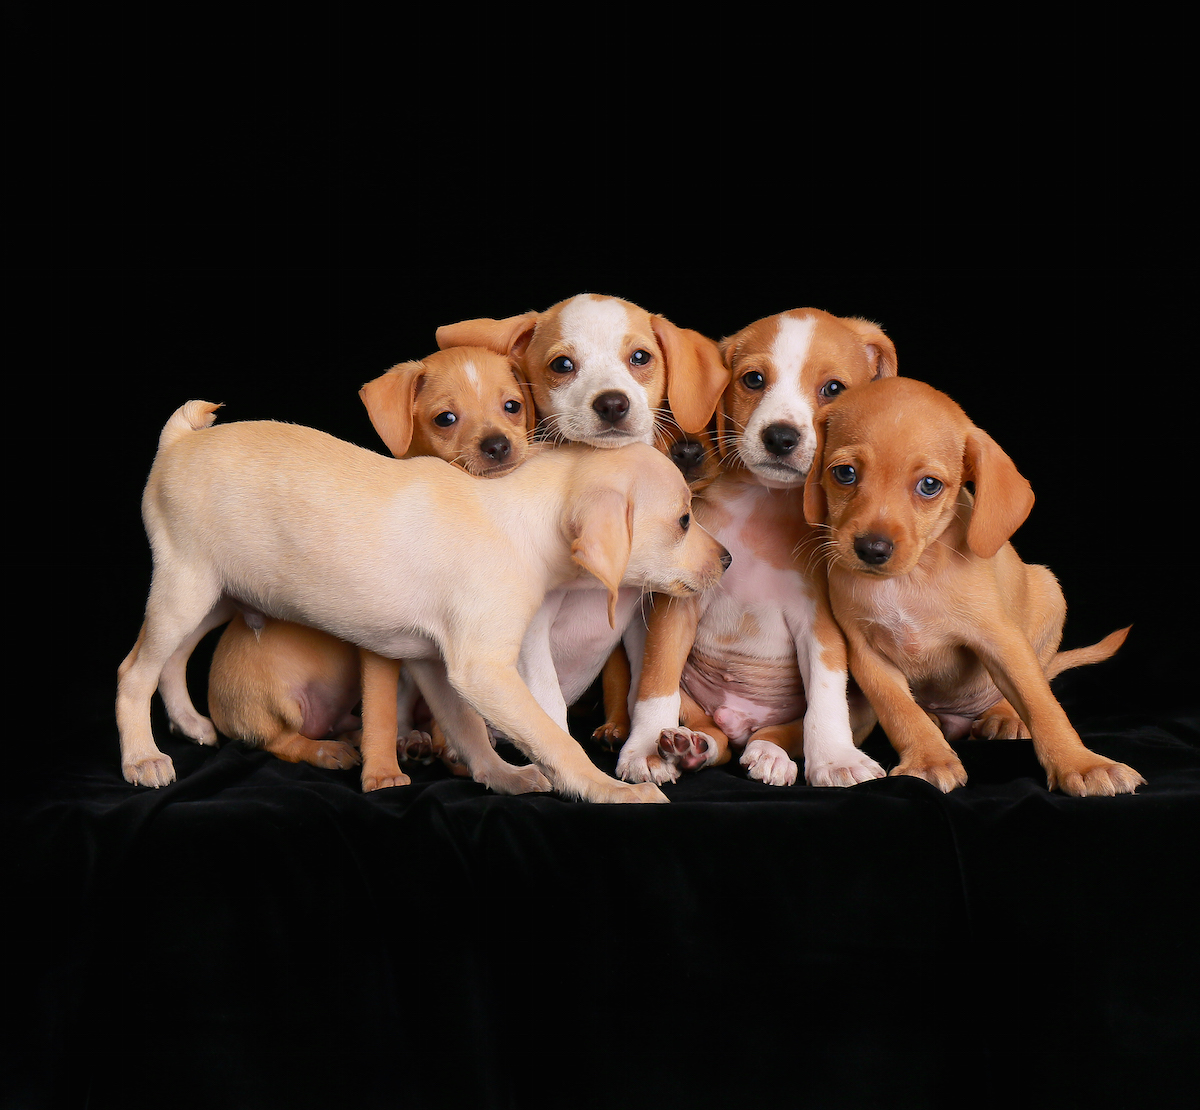 2018 Dog Photographer of the Year Dog Photos by The Kennel Club